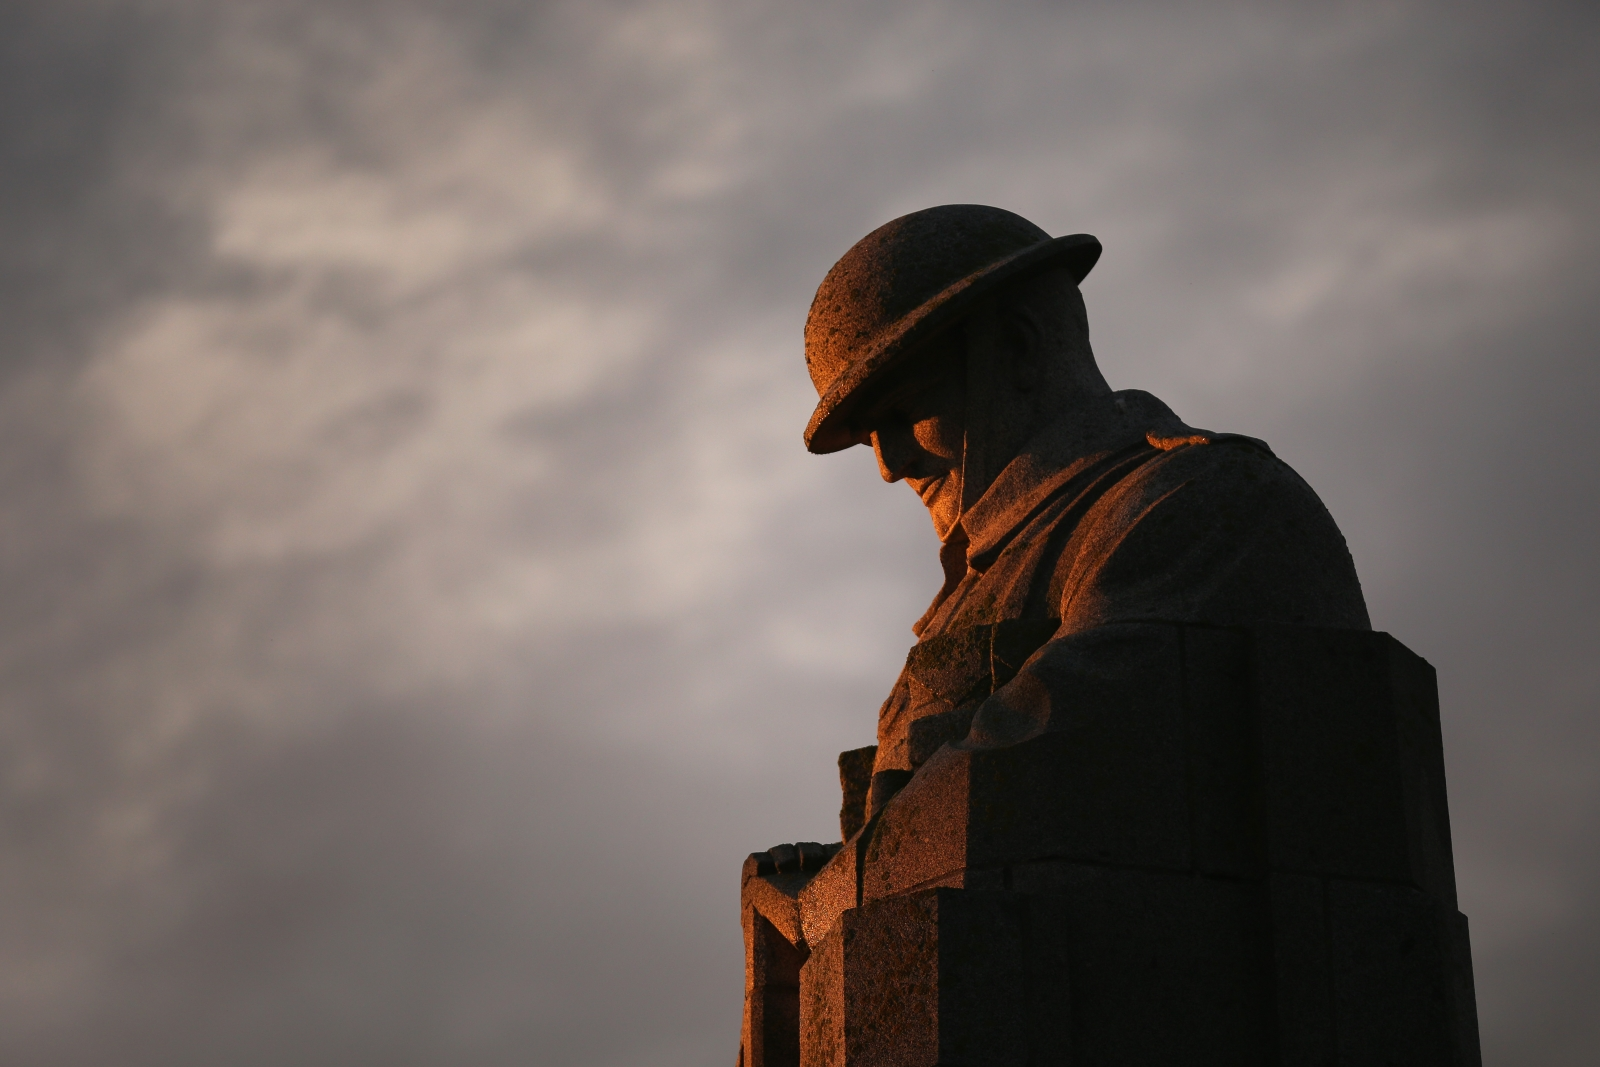 WW1 Statue of the Brooding Soldier